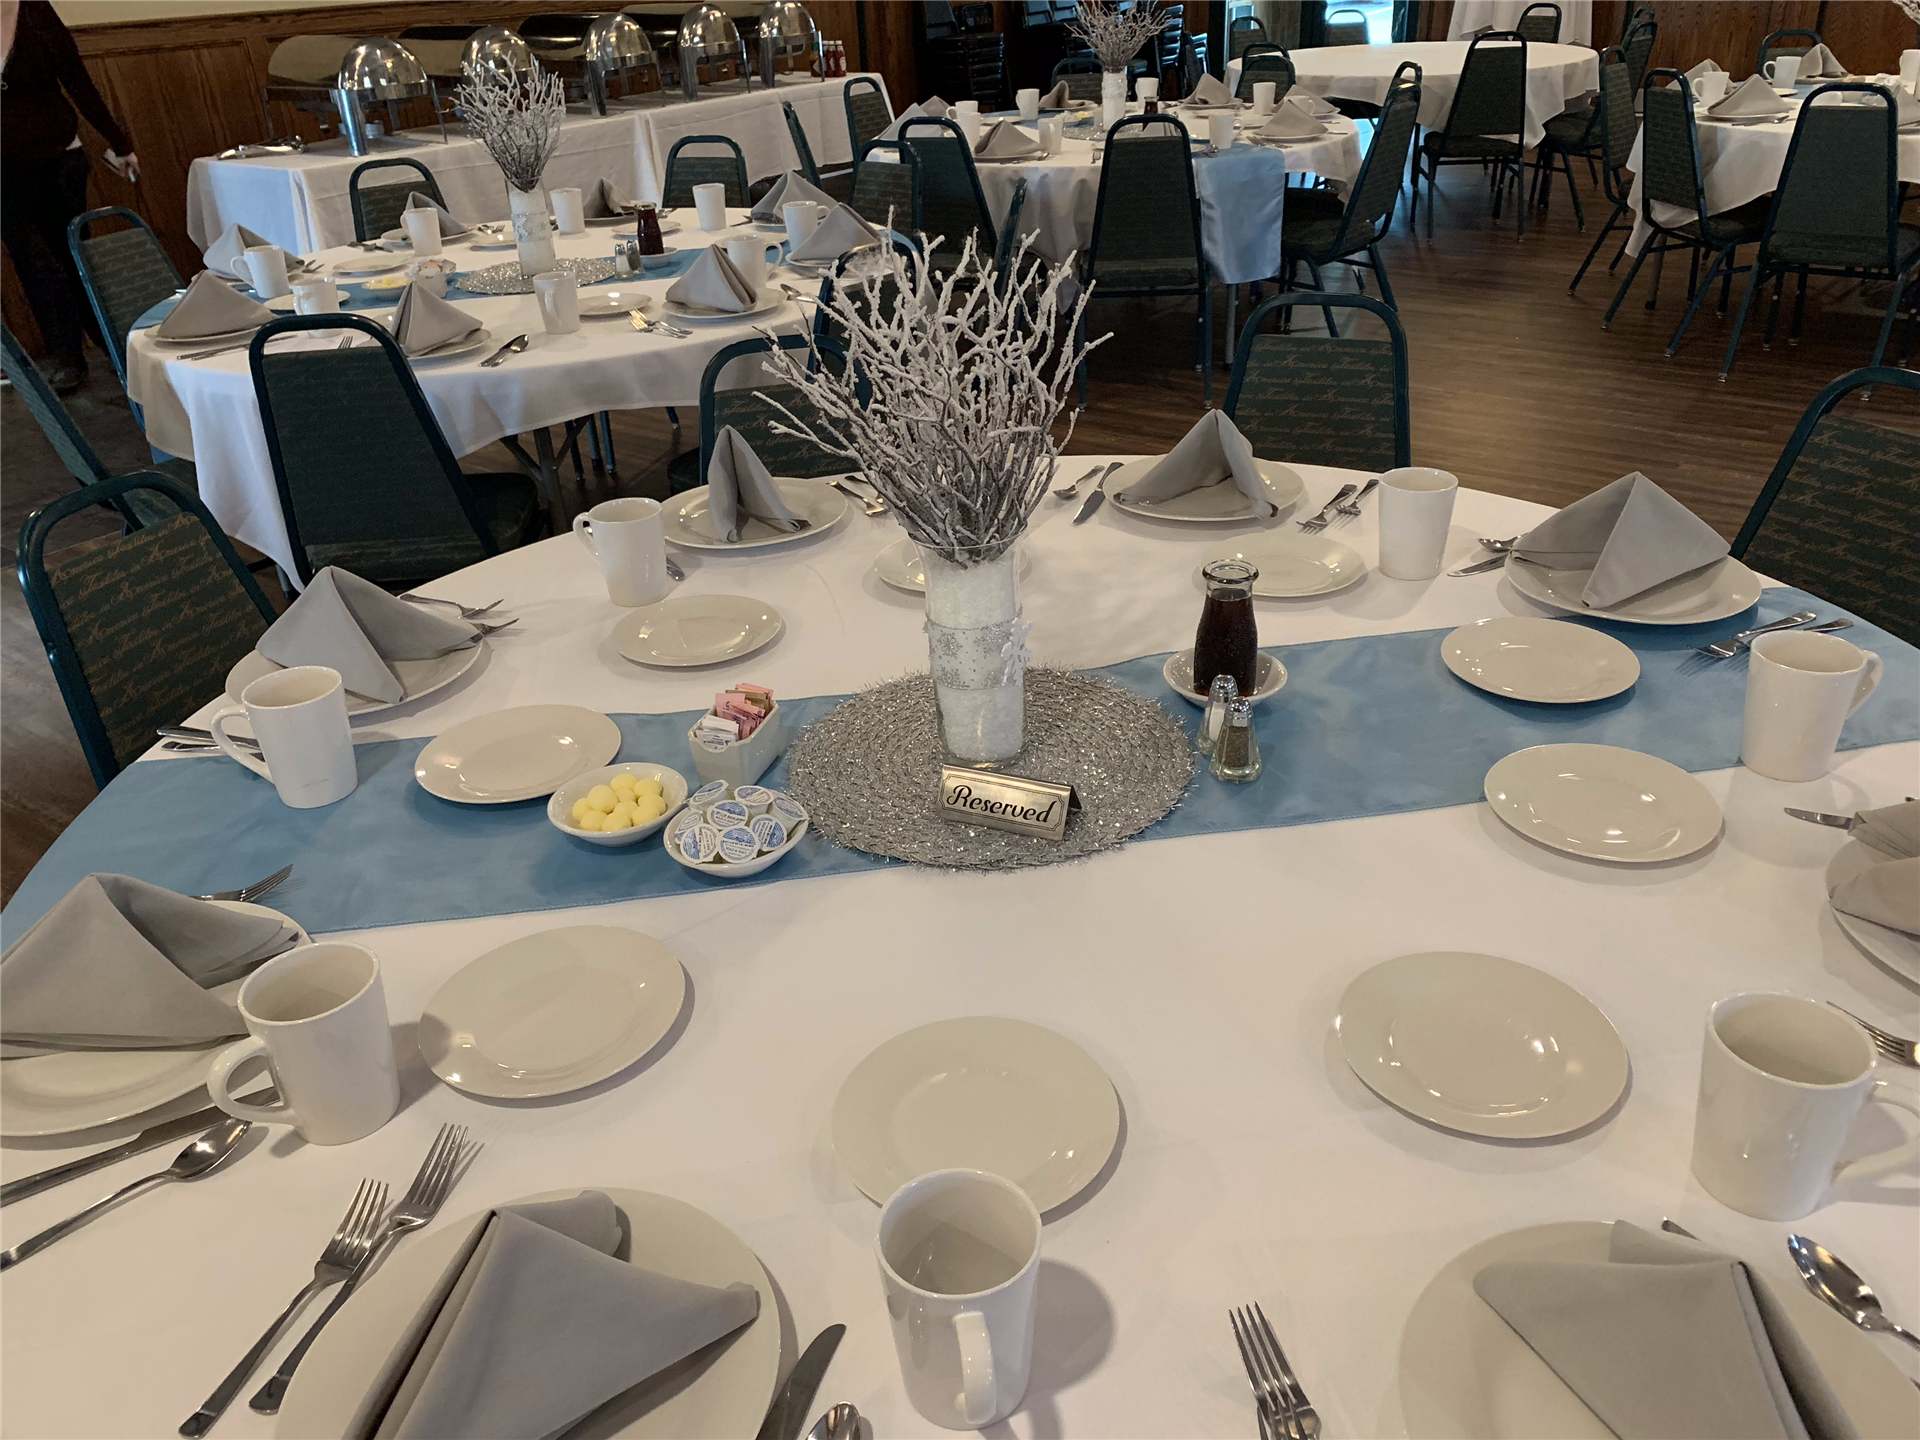 Round table with plates and silverware